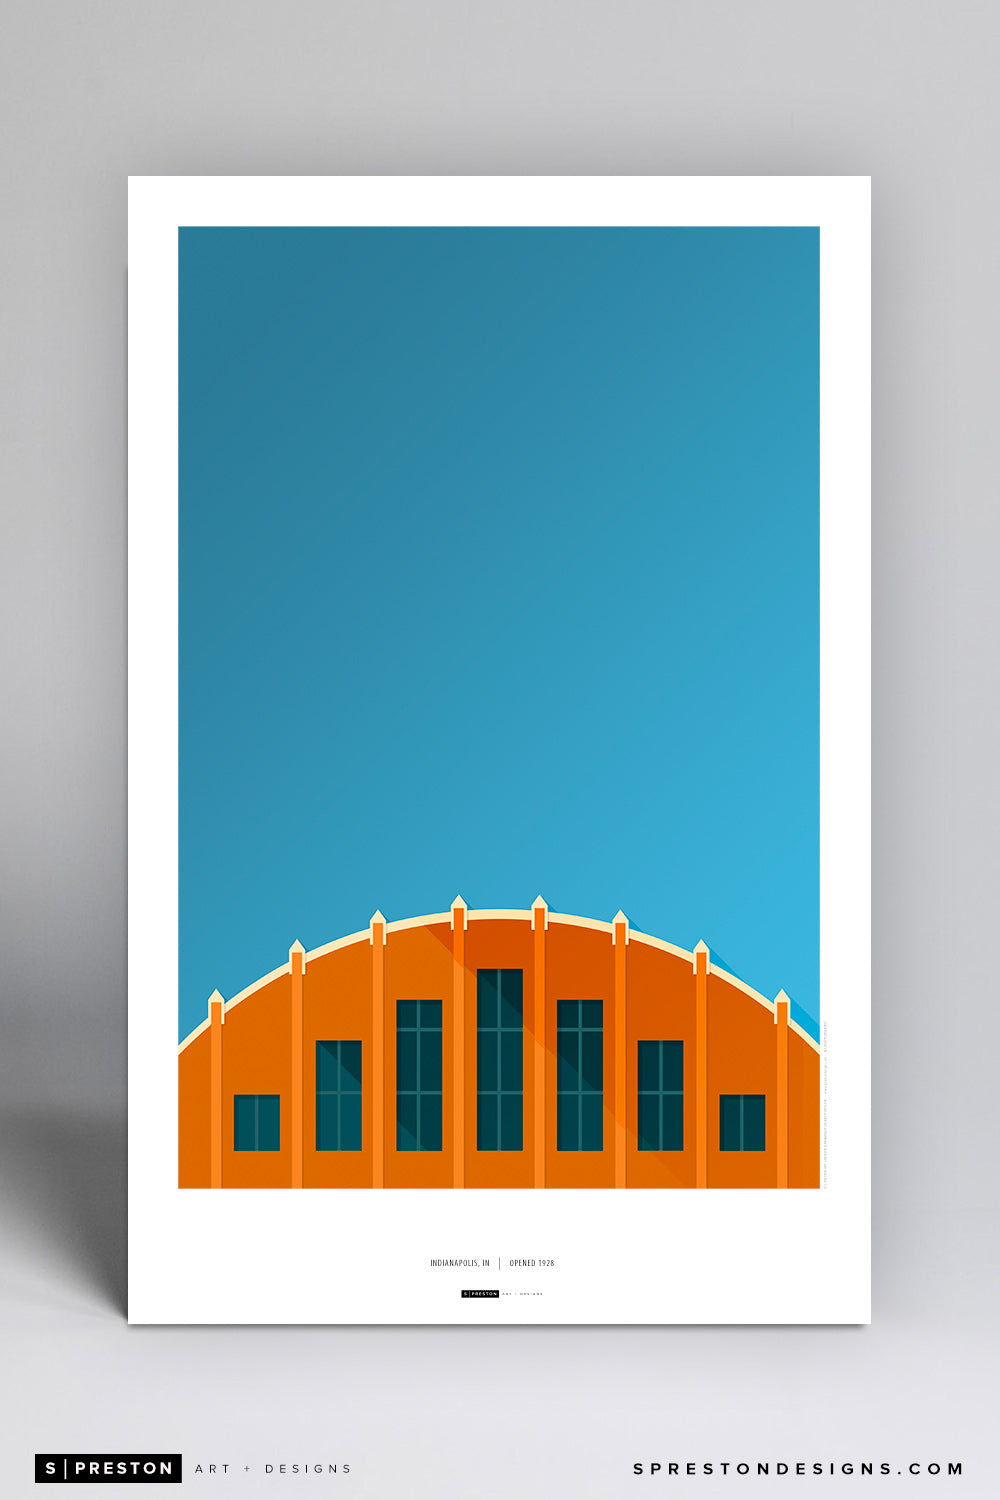 Minimalist Hinkle Fieldhouse Art Poster - Butler Art Poster - Butler University - S. Preston Art + Designs